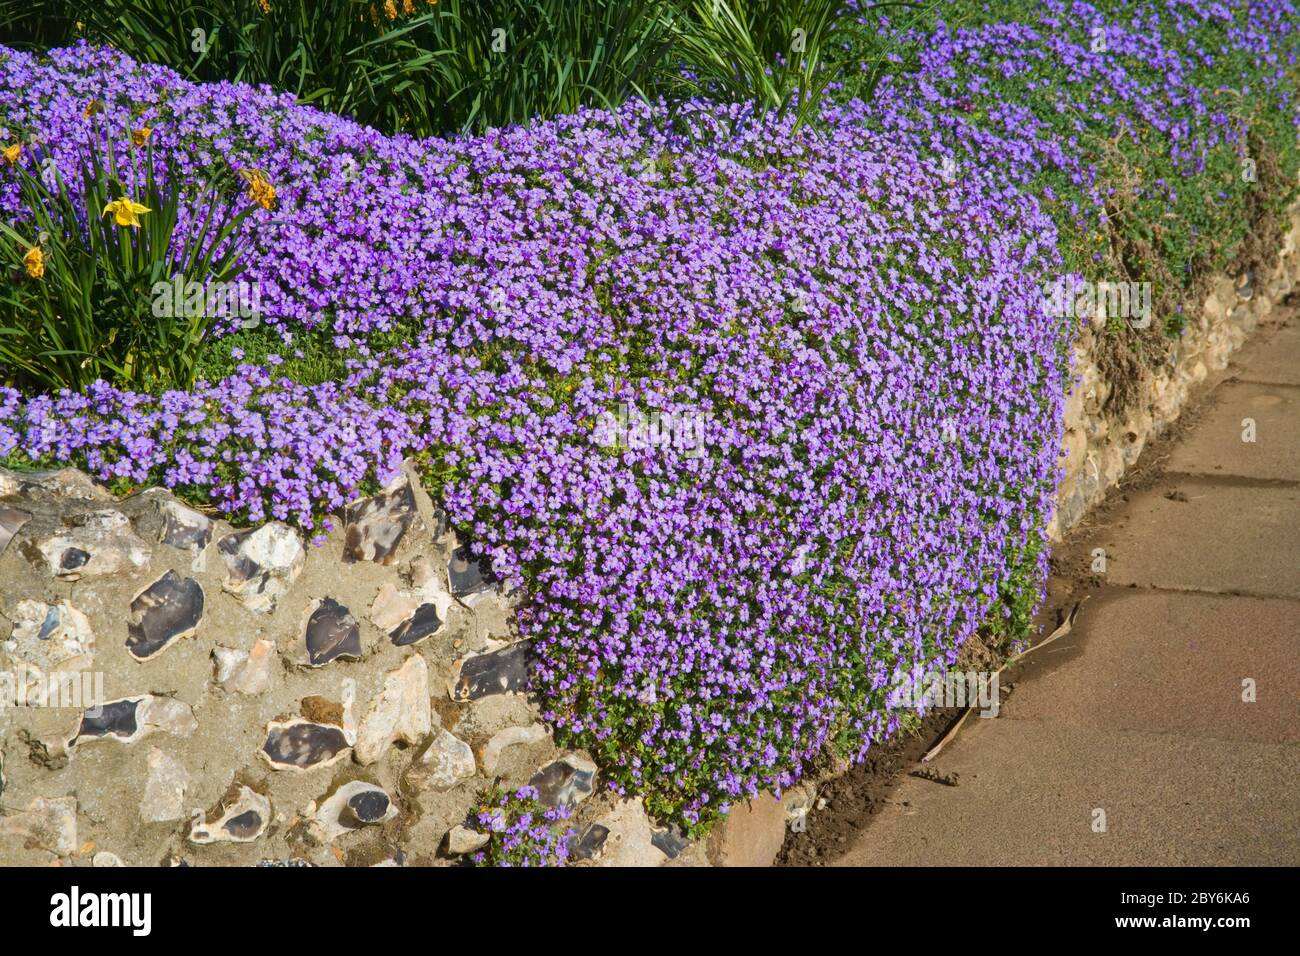 aubrieta flowers in the public gardens at hove on the east sussex coast Stock Photo